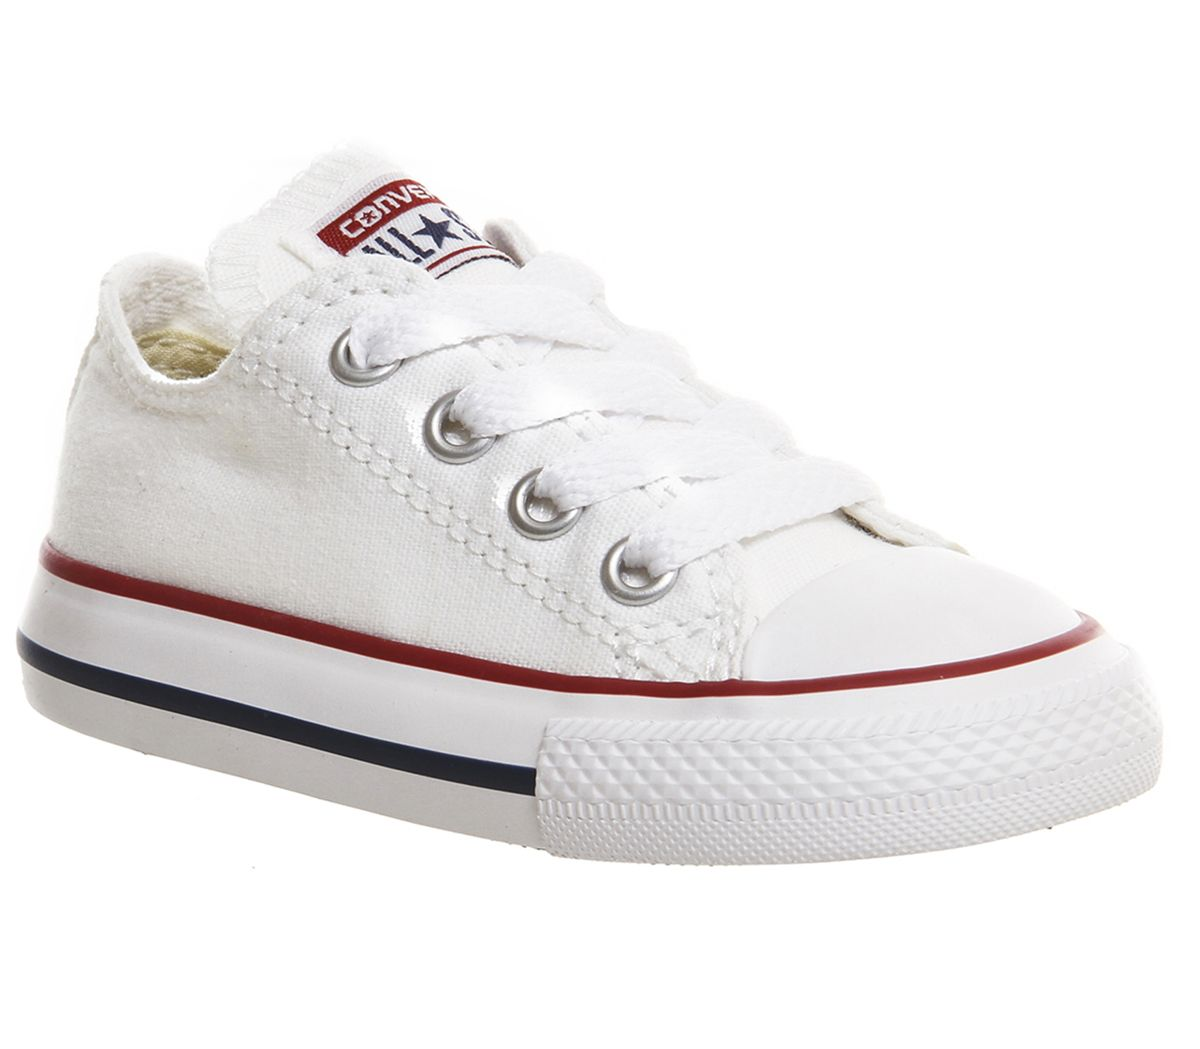 bab464abea4f Converse All Star Low Infant Shoes White - Unisex